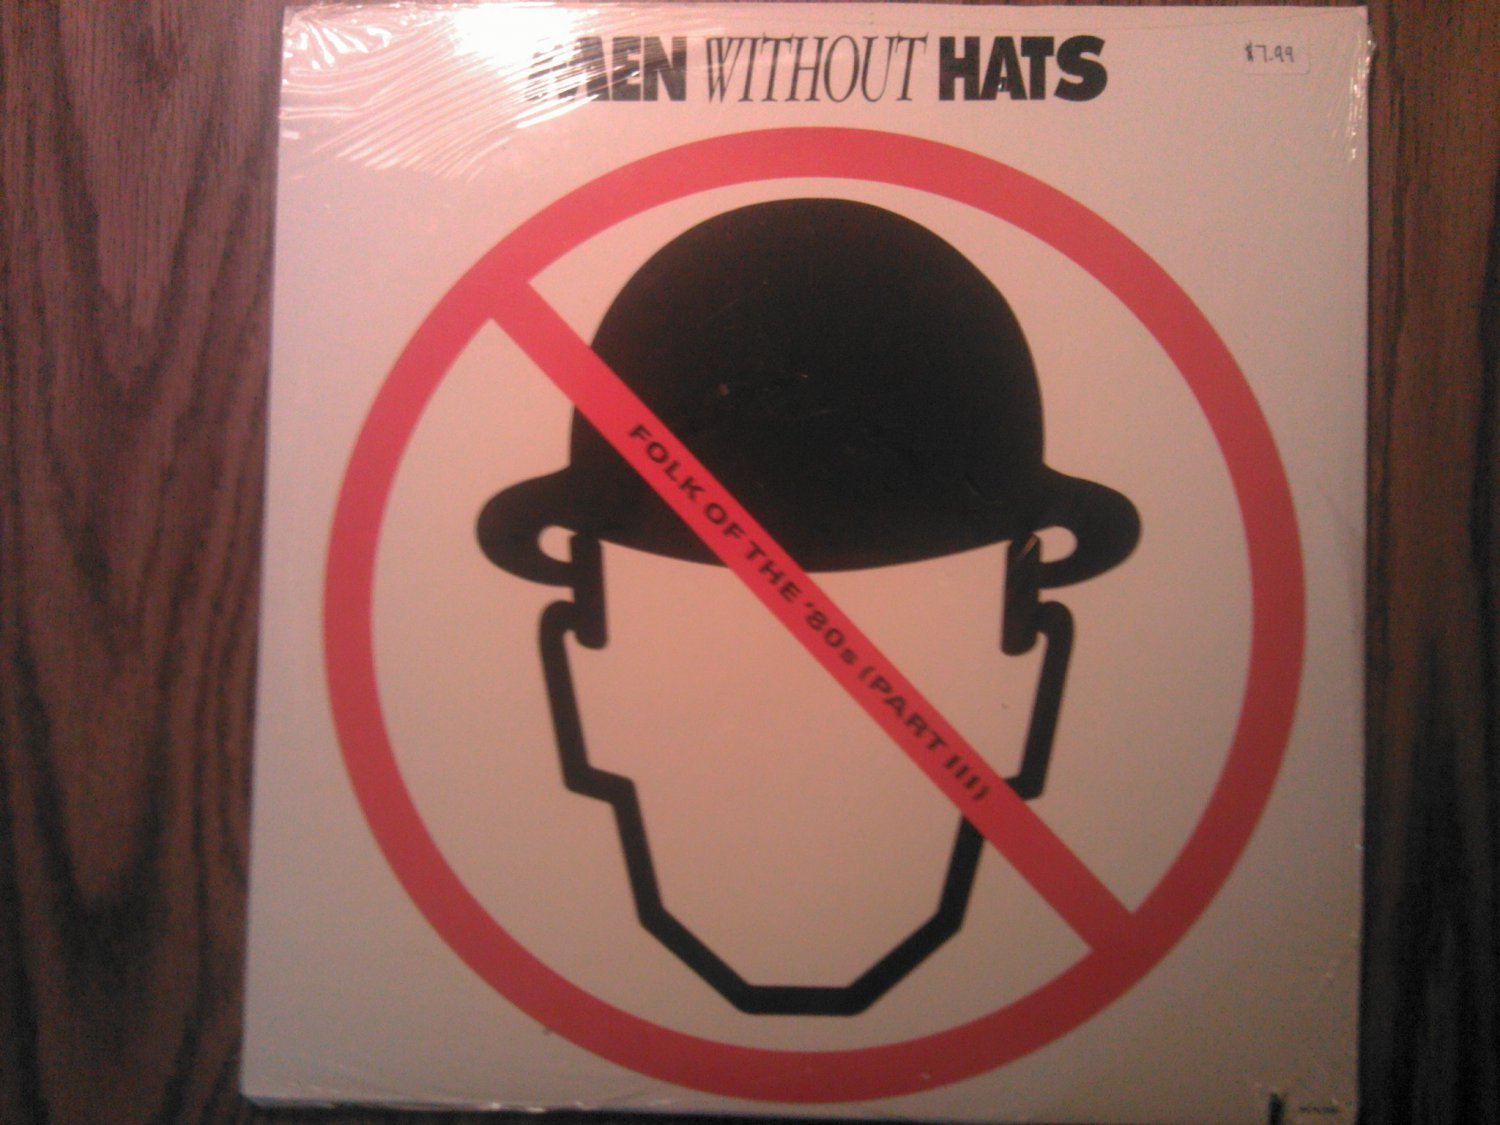 LP MEN WITHOUT HATS Folk of the 80's Part 3 no dancing vintage record SEALED